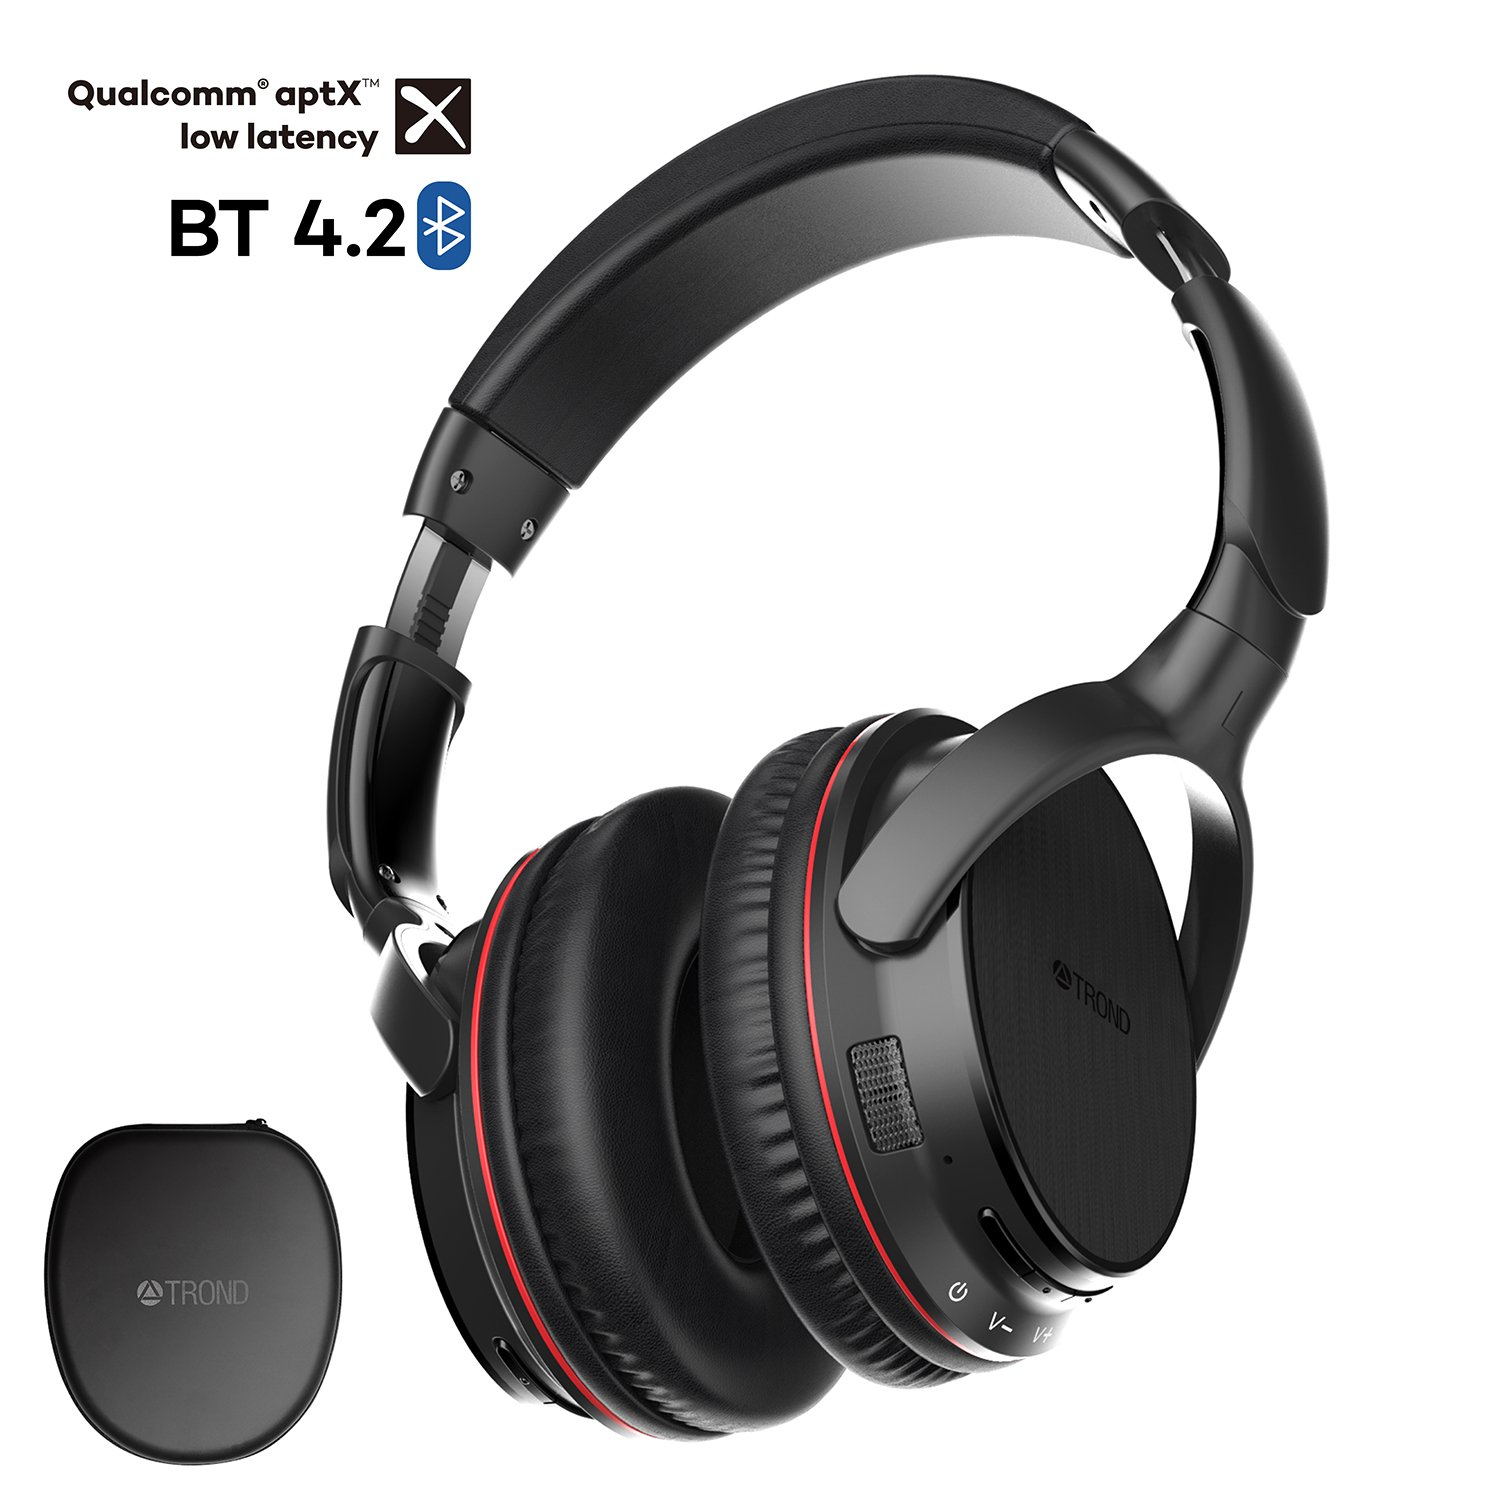 TROND Bluetooth V4 2 Headphones Wireless with Mic Over Ear, Lightweight,  30H Playtime, APTX Low Latency, LED Codec Indicator, for PC/Cell Phones/TV